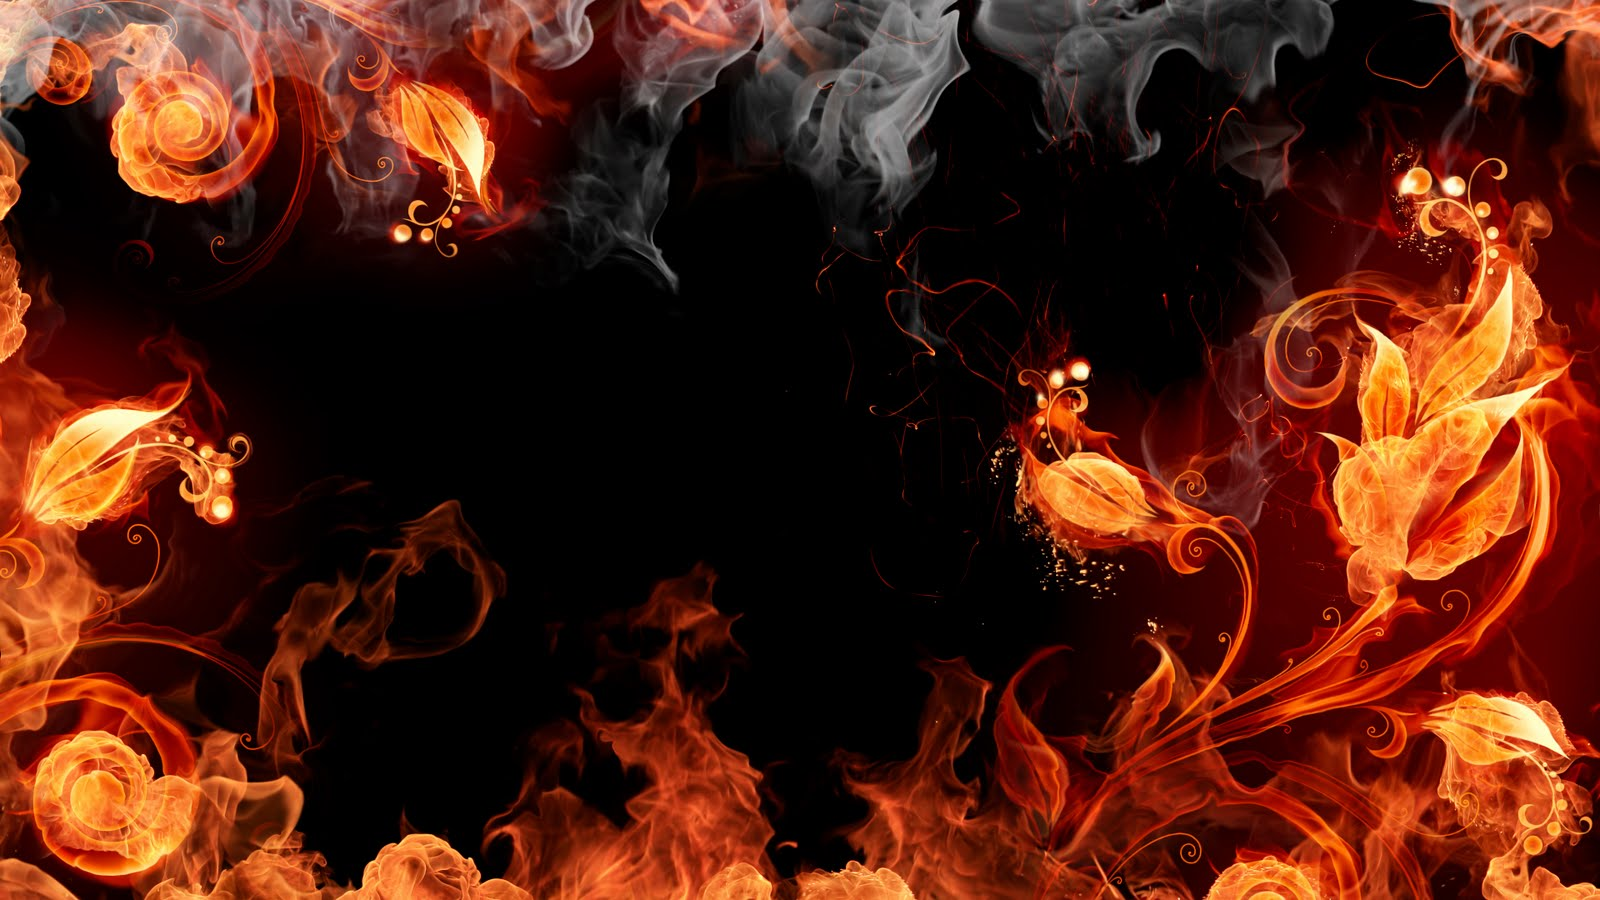 Fire Element High Definition Wallpapers Backgrounds Wallpaper Hd 1600x900